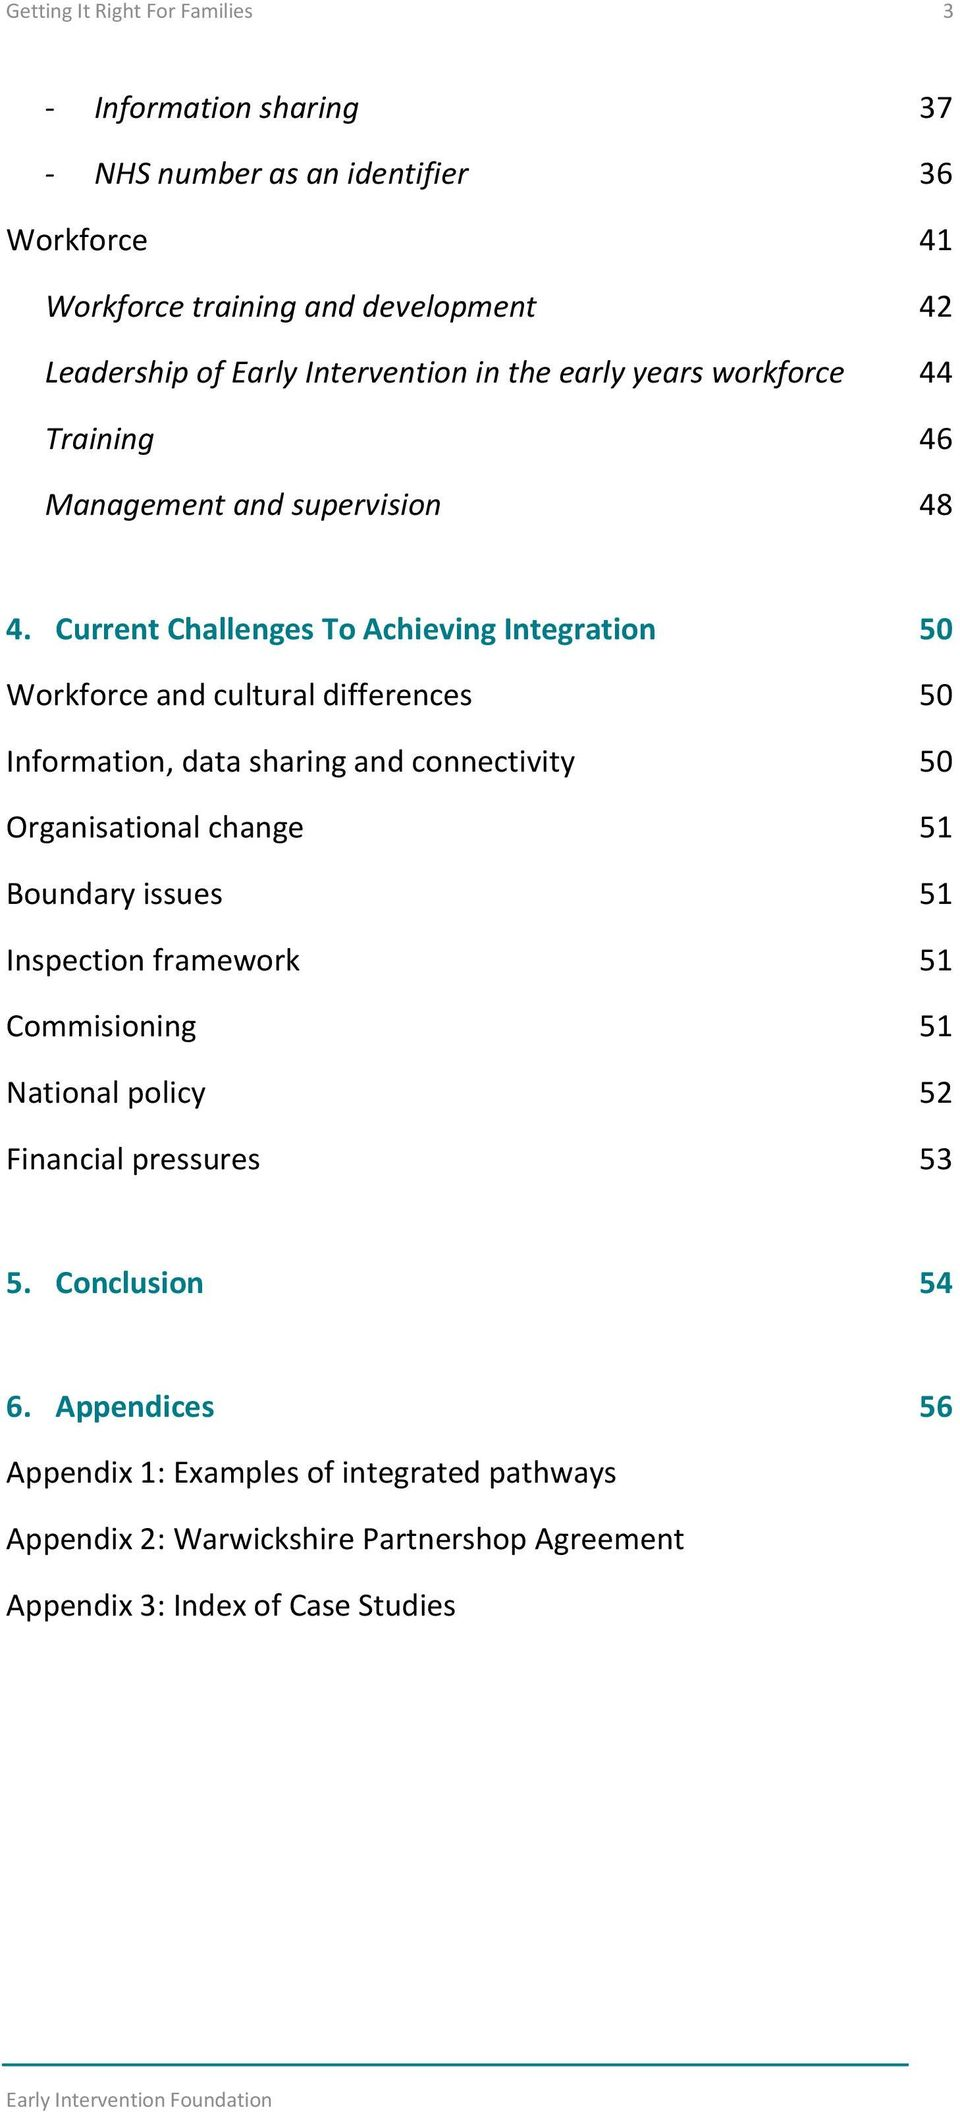 Current Challenges To Achieving Integration 50 Workforce and cultural differences 50 Information, data sharing and connectivity 50 Organisational change 51